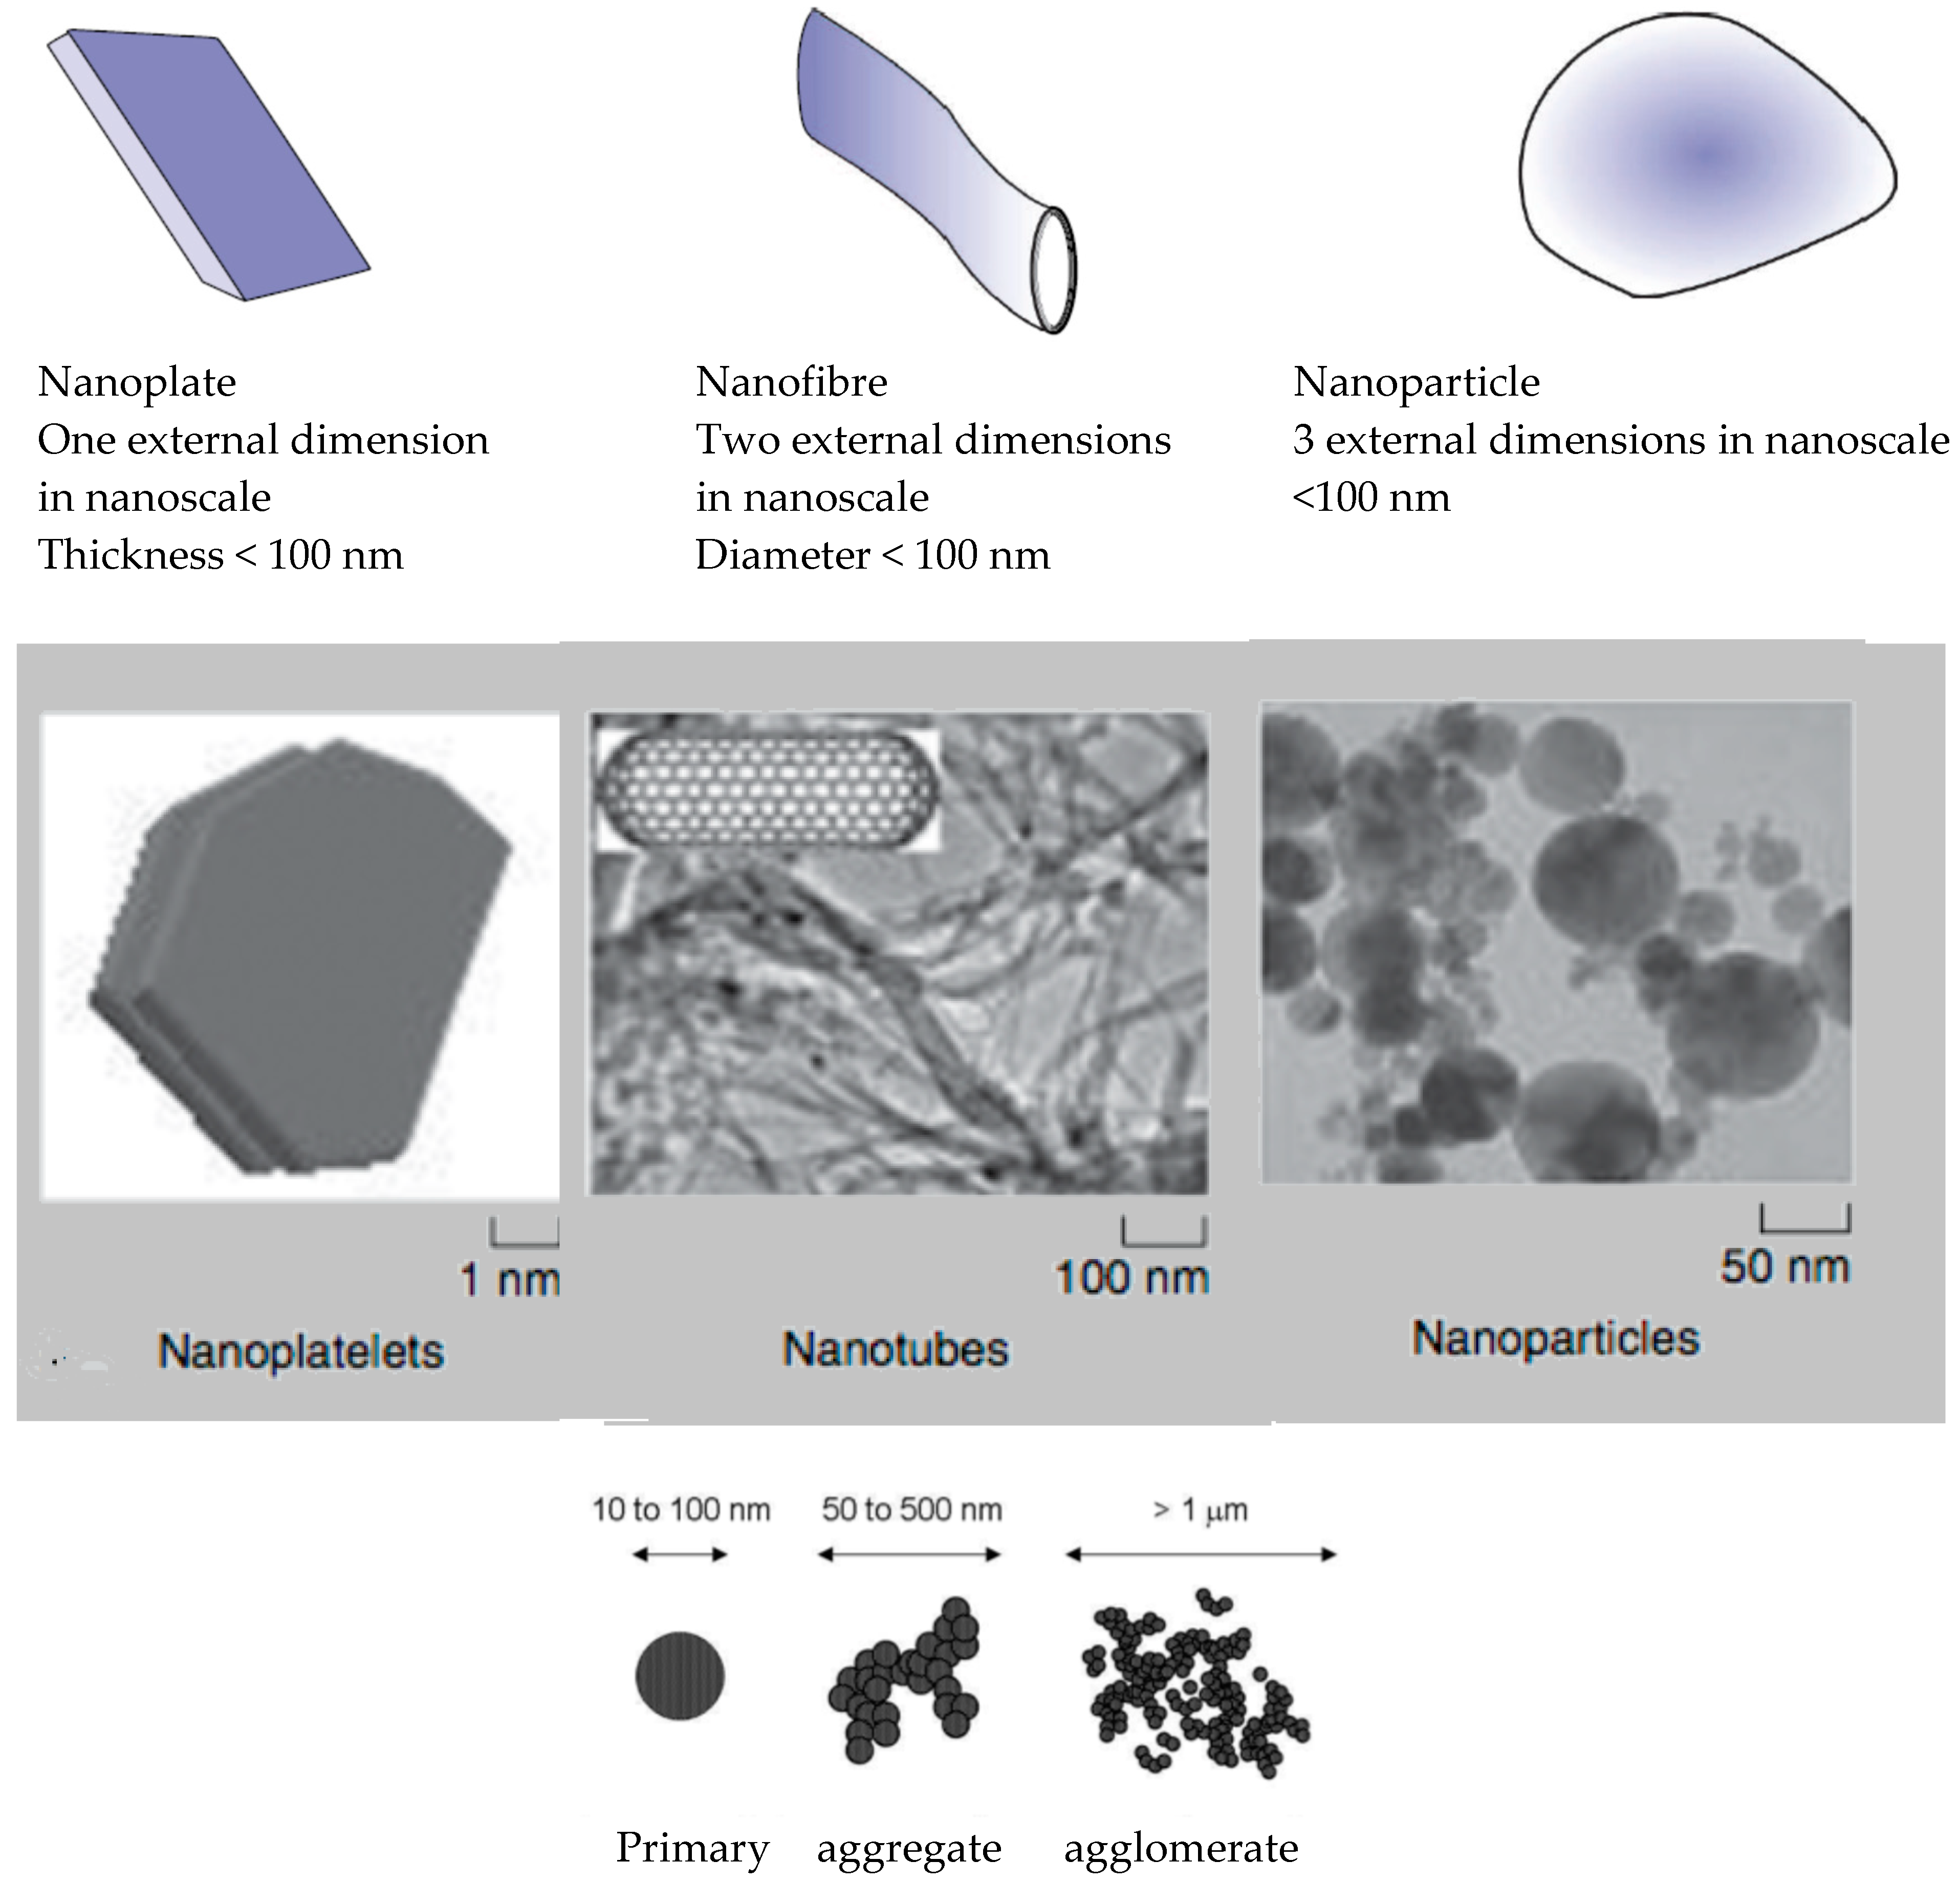 Materials   Free Full-Text   Polymeric Nanocomposites and